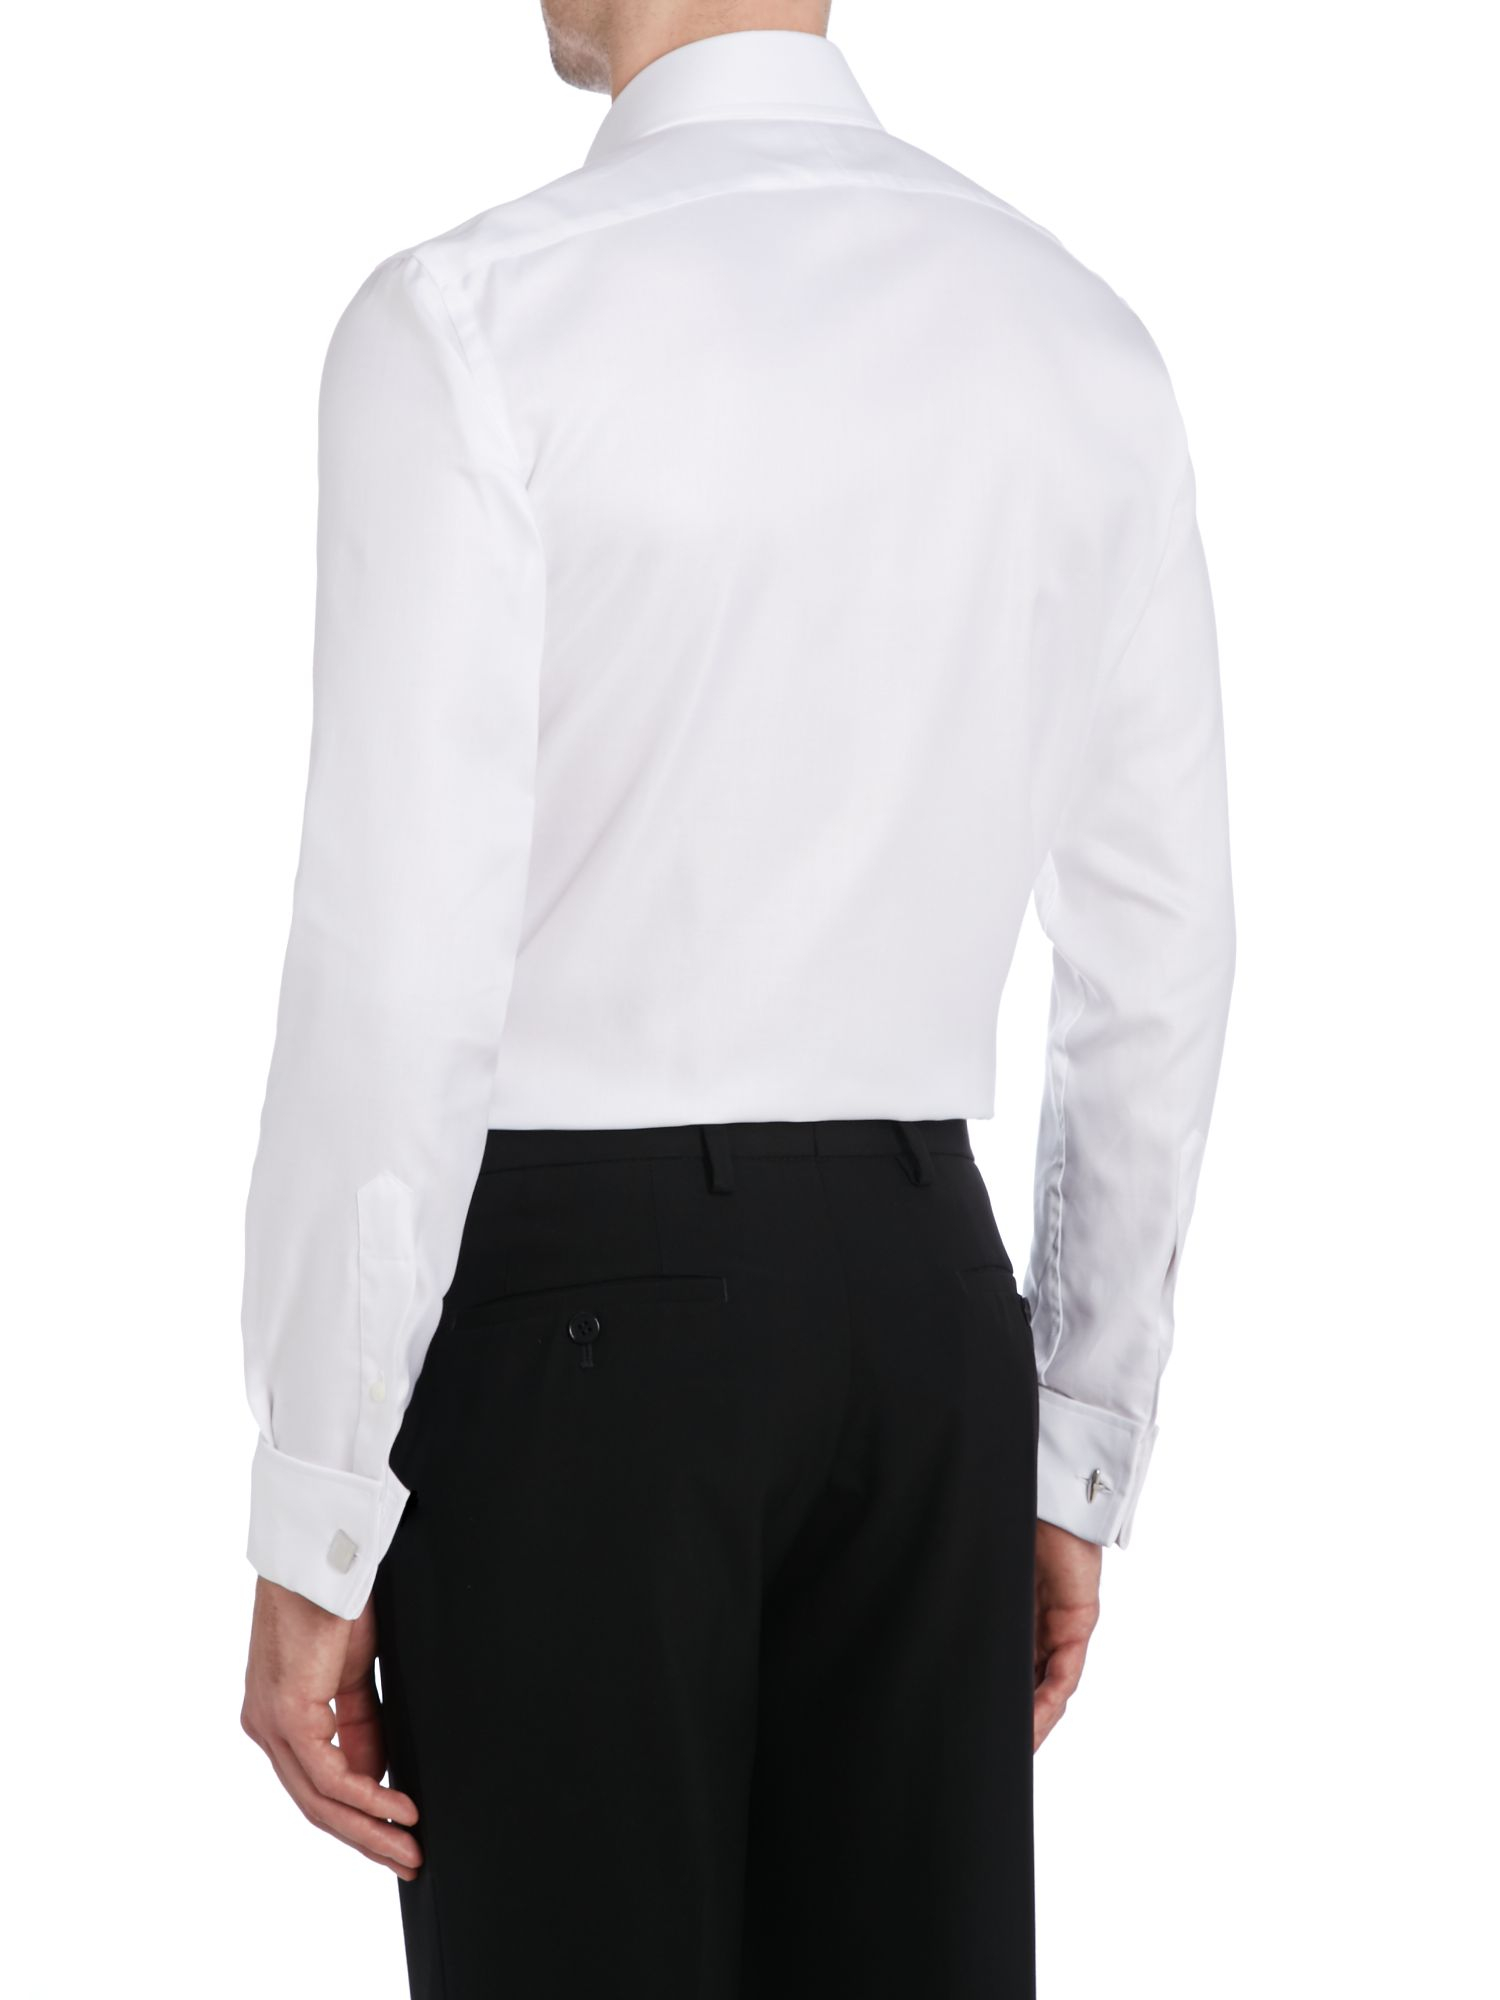 Tm lewin luxury twill fitted shirt in white for men lyst for Tailored fit shirts meaning